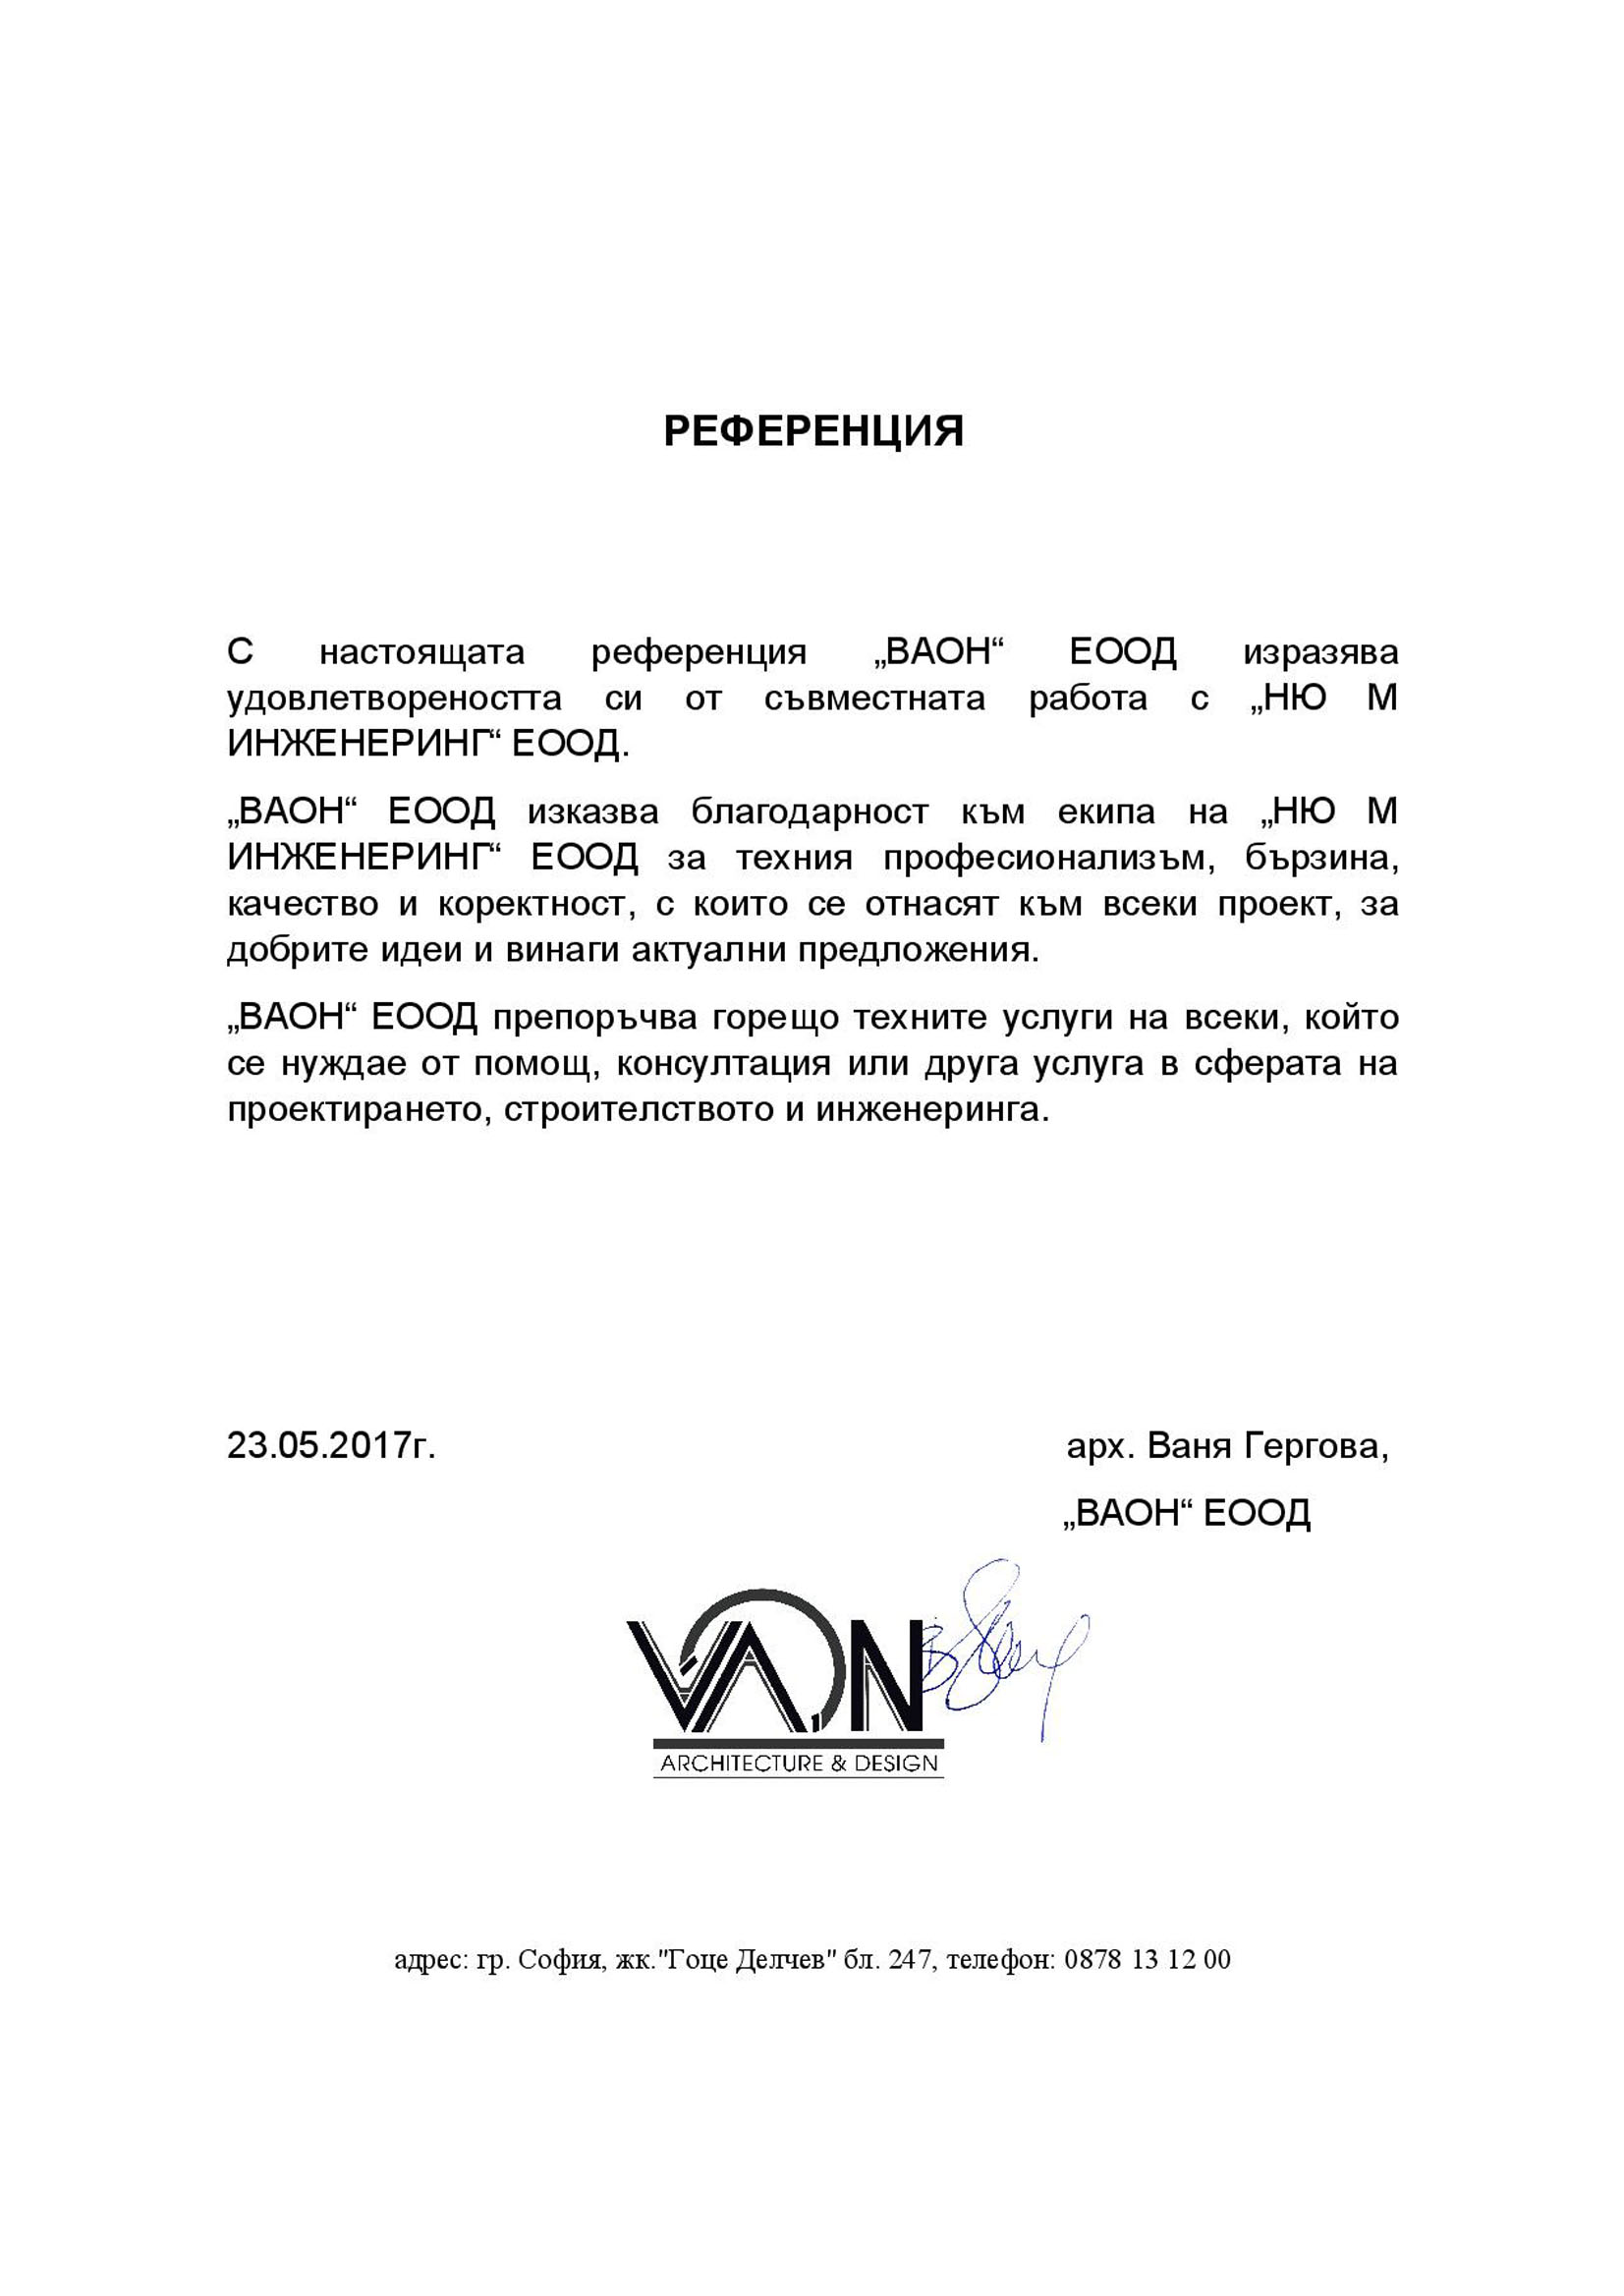 Reference from VAON LTD.